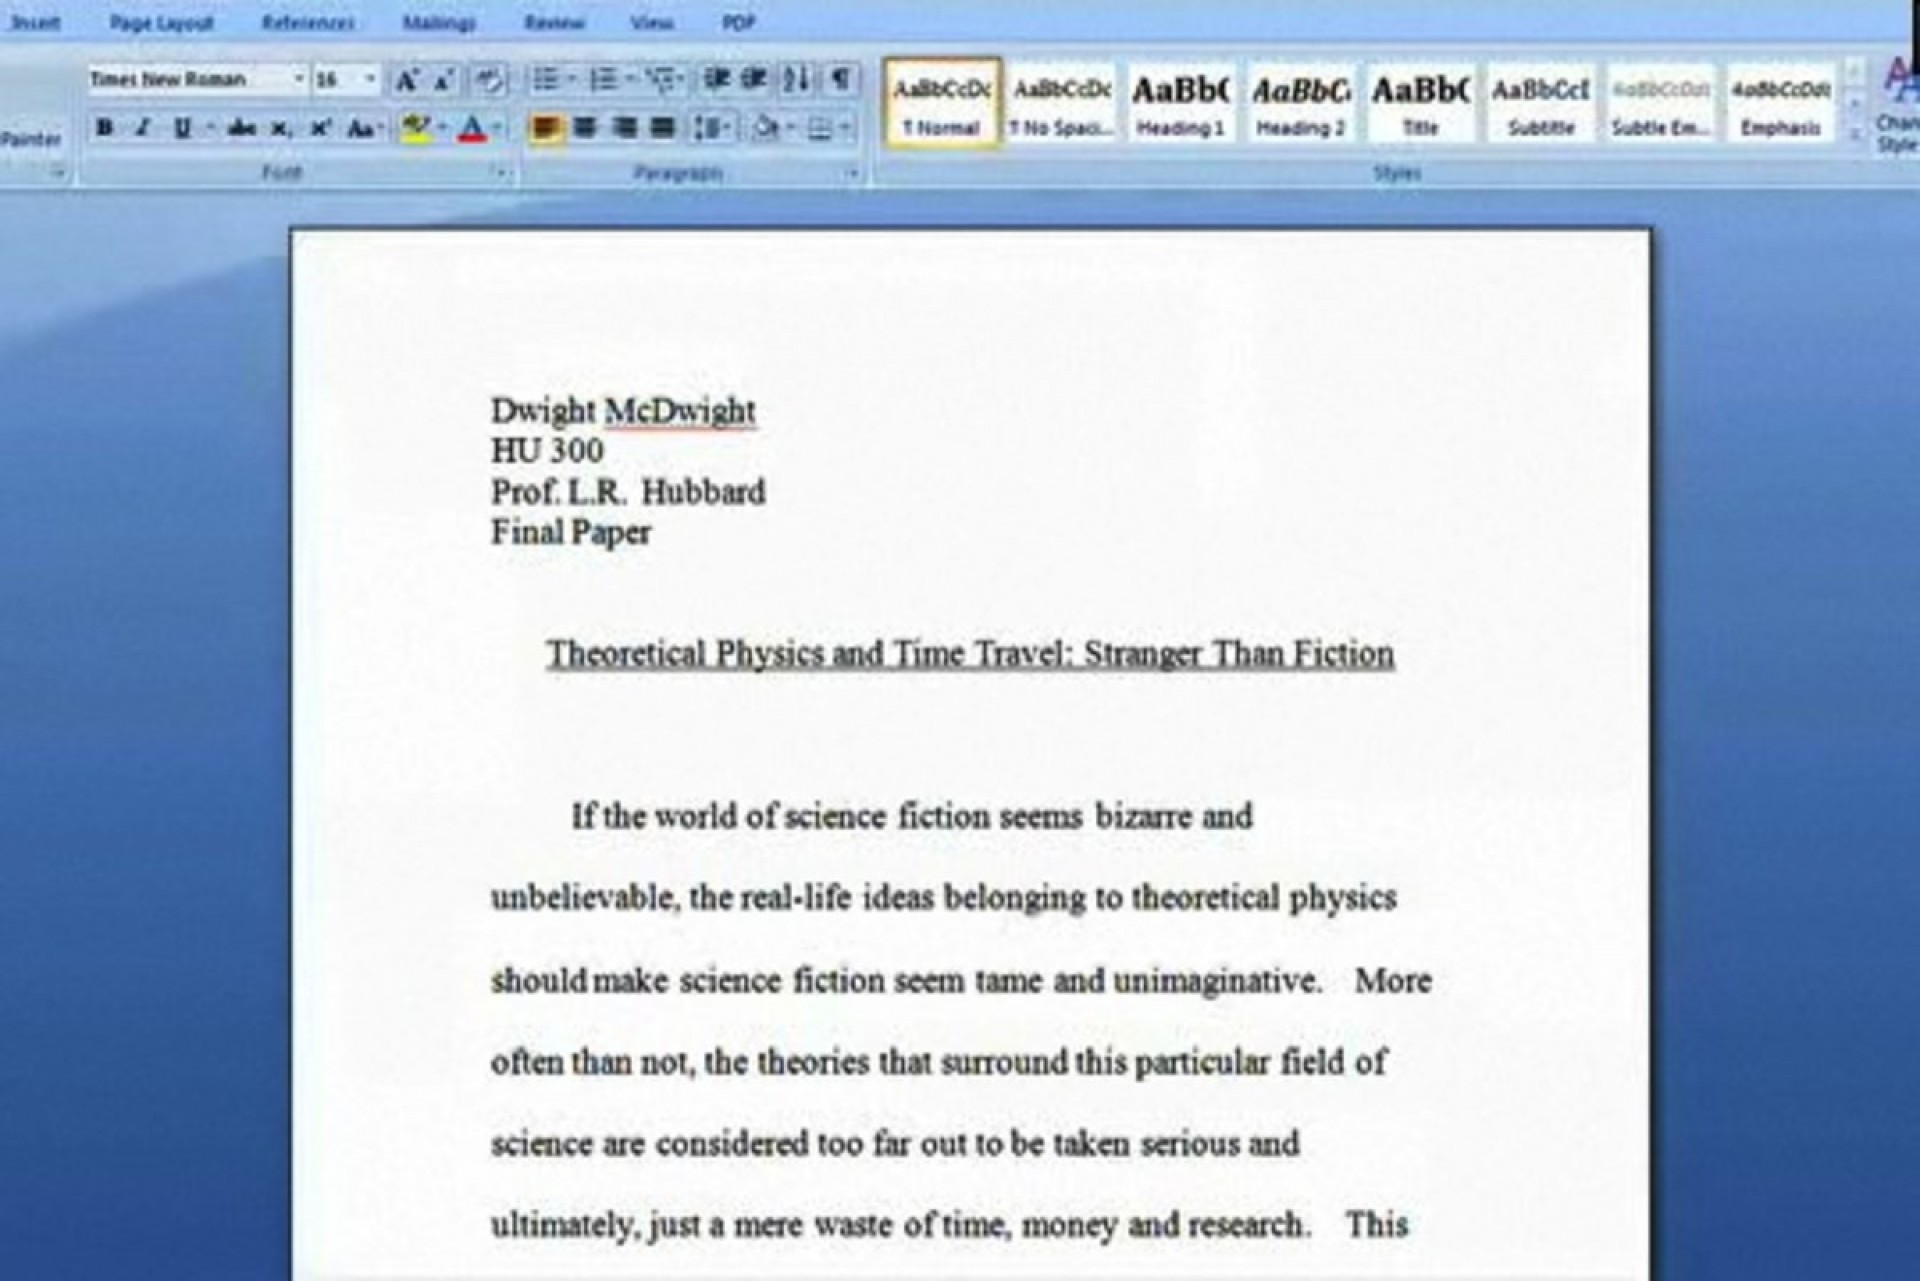 003 How Can You Make Research Paper Longer O To Your School Reports Look Than They Are Promo Archaicawful A Get 1920